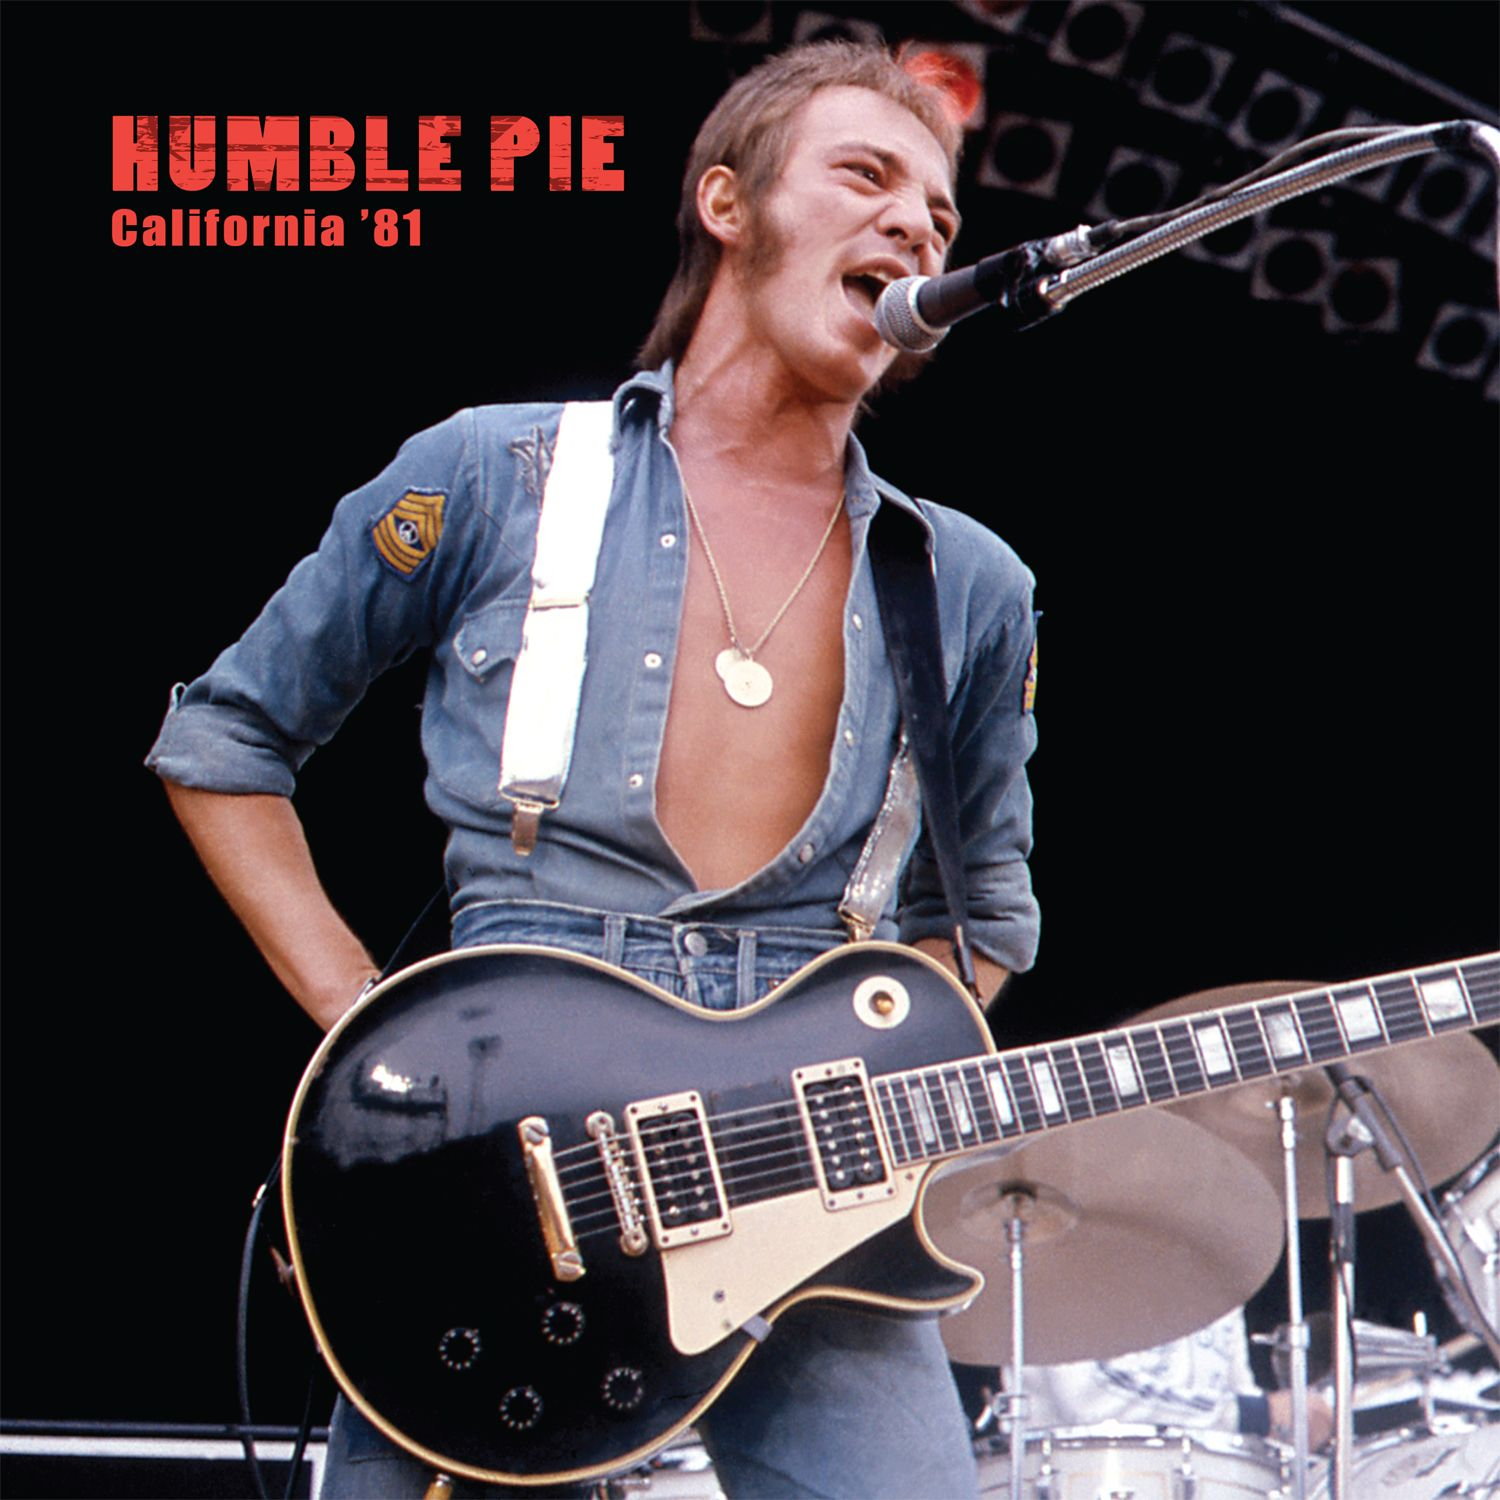 Steve Marriott Of Humble Pie Died In A Housefire On April